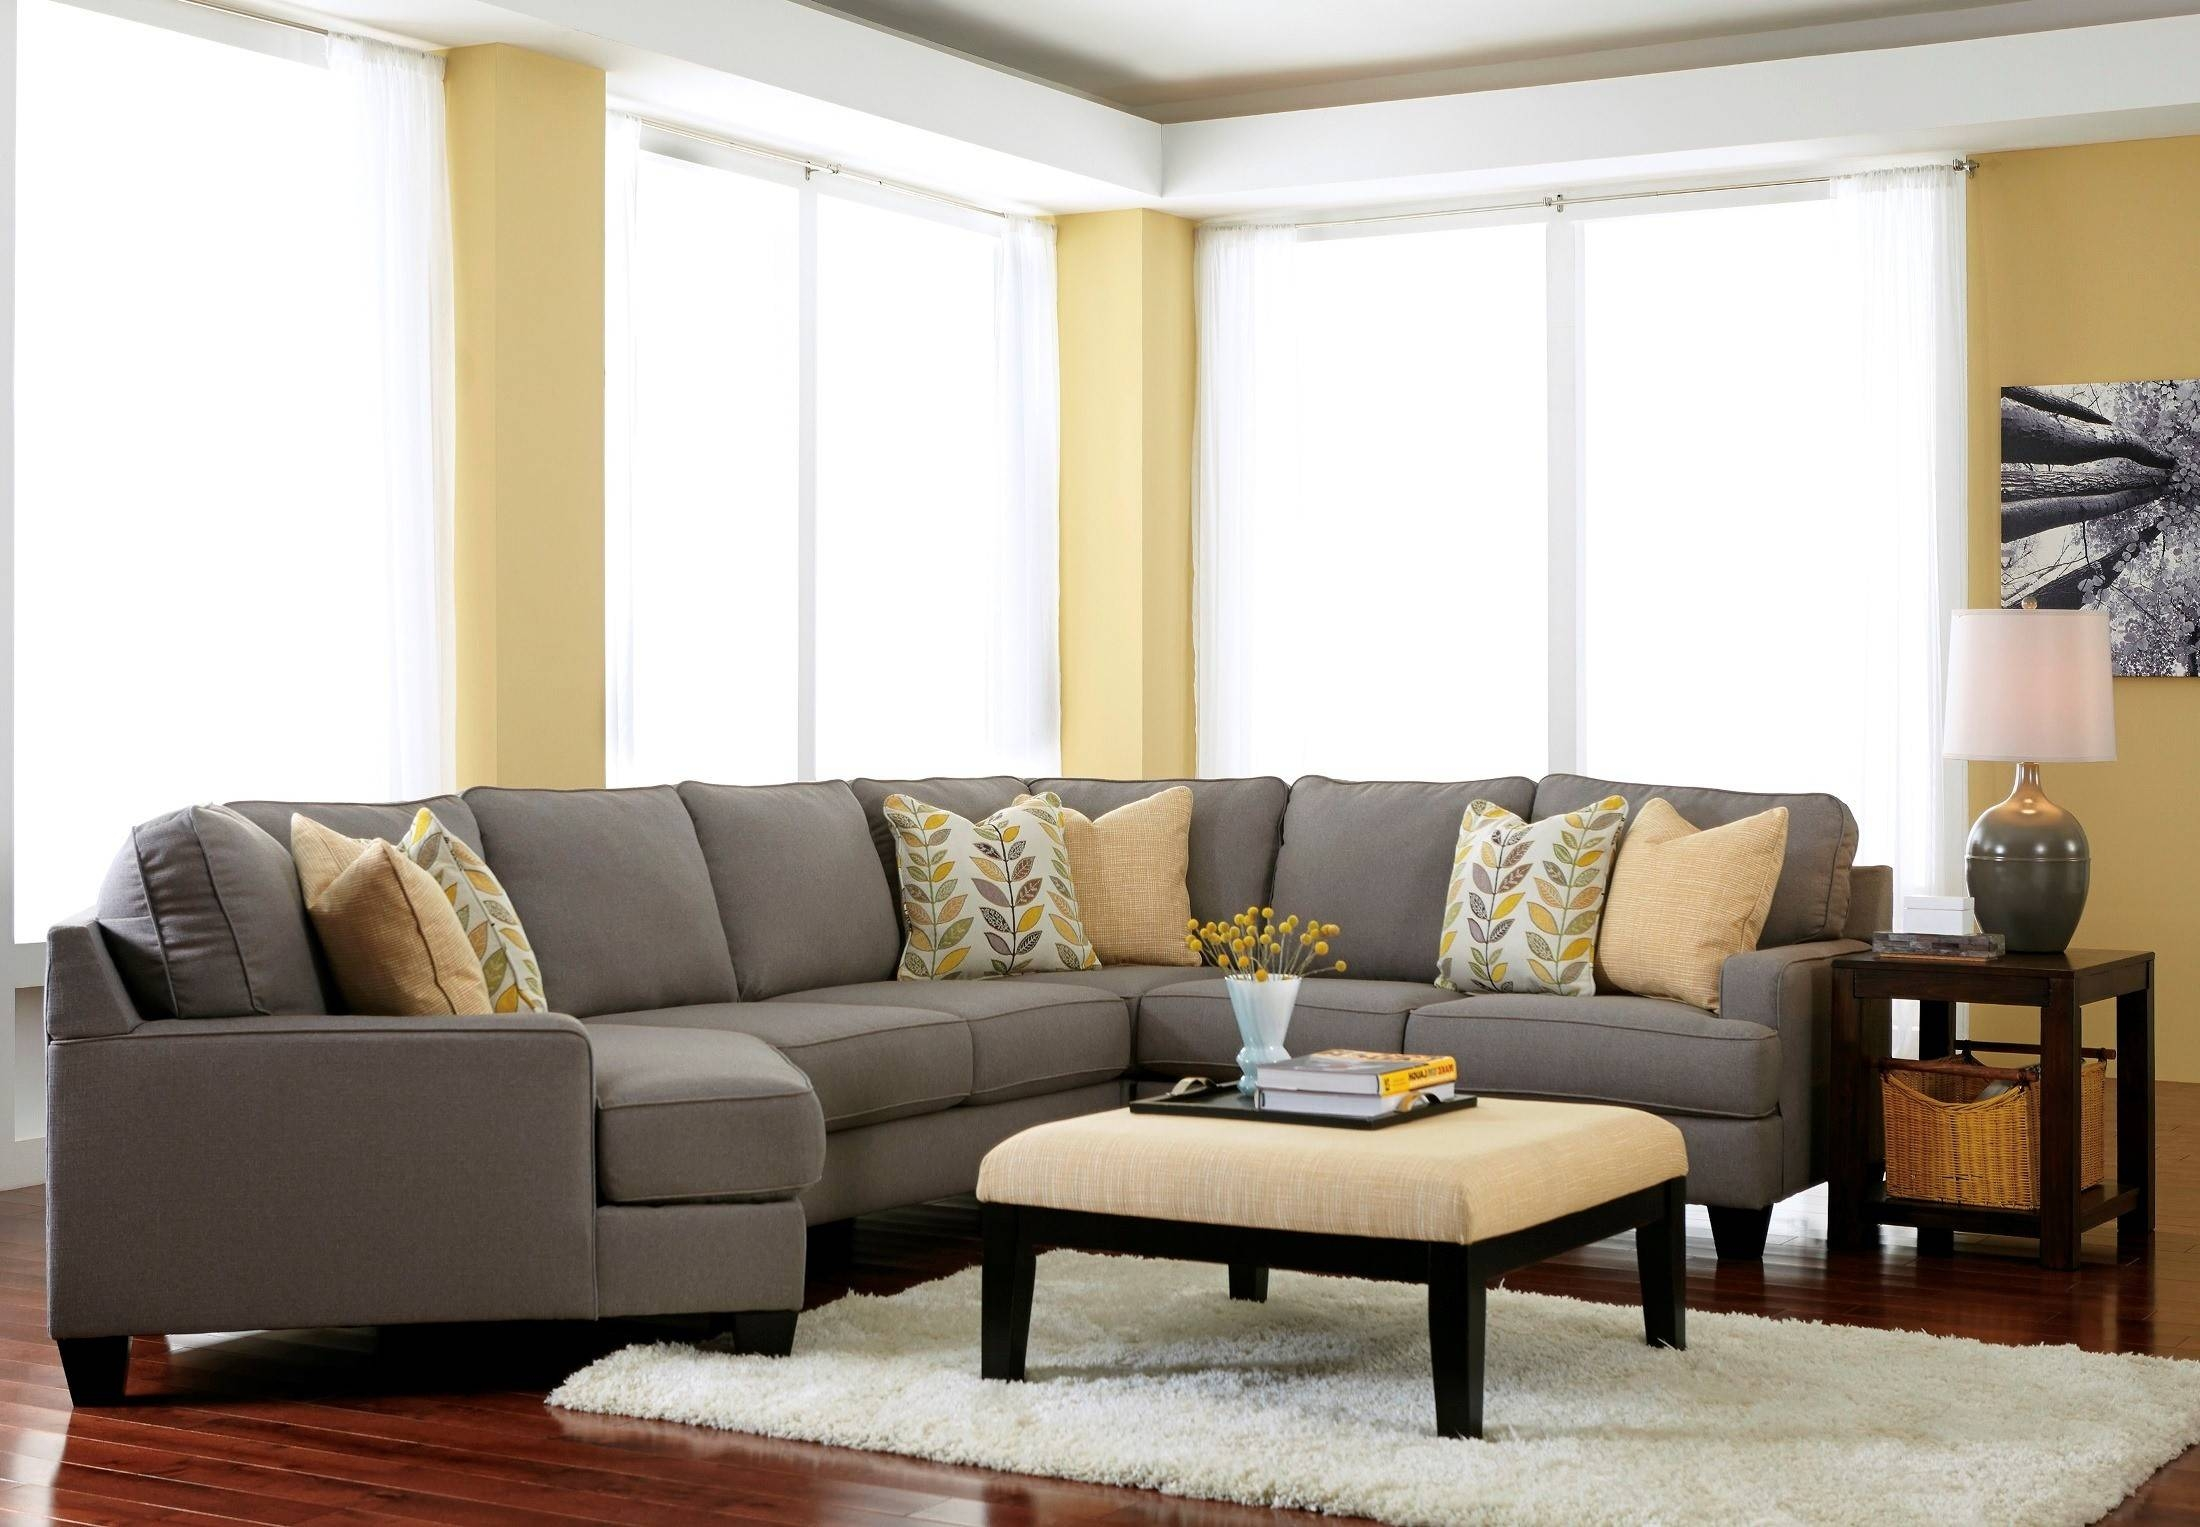 Chamberly Alloy Laf Cuddler Sectional From Ashley (2430216 with Cuddler Sectional Sofa (Image 6 of 30)